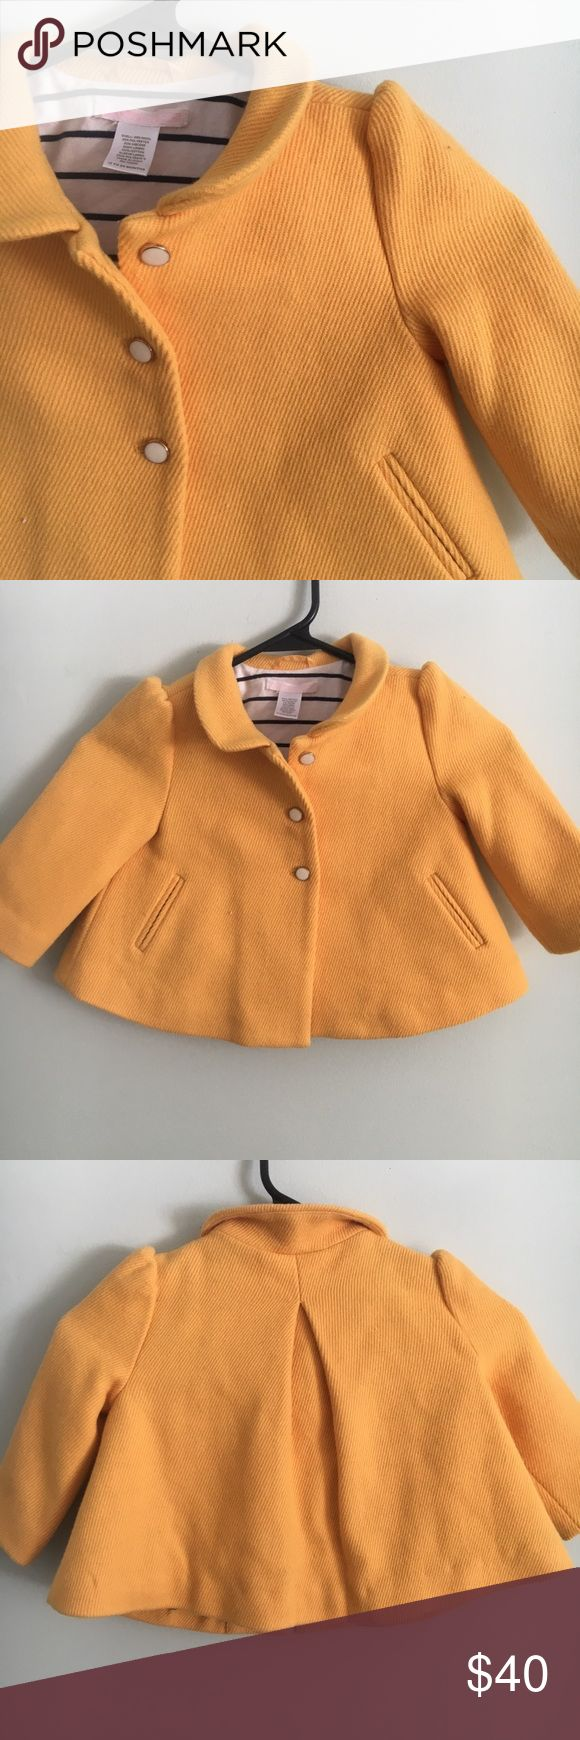 Janie and Jack Toddler Girls Peacoat Mustard yellow peacoat with gold and pearl buttons. Pocket on sides. Exterior in excellent condition. Minor discoloring on right inside (shown in picture) but obviously not seen when worn. Janie and Jack Jackets & Coats